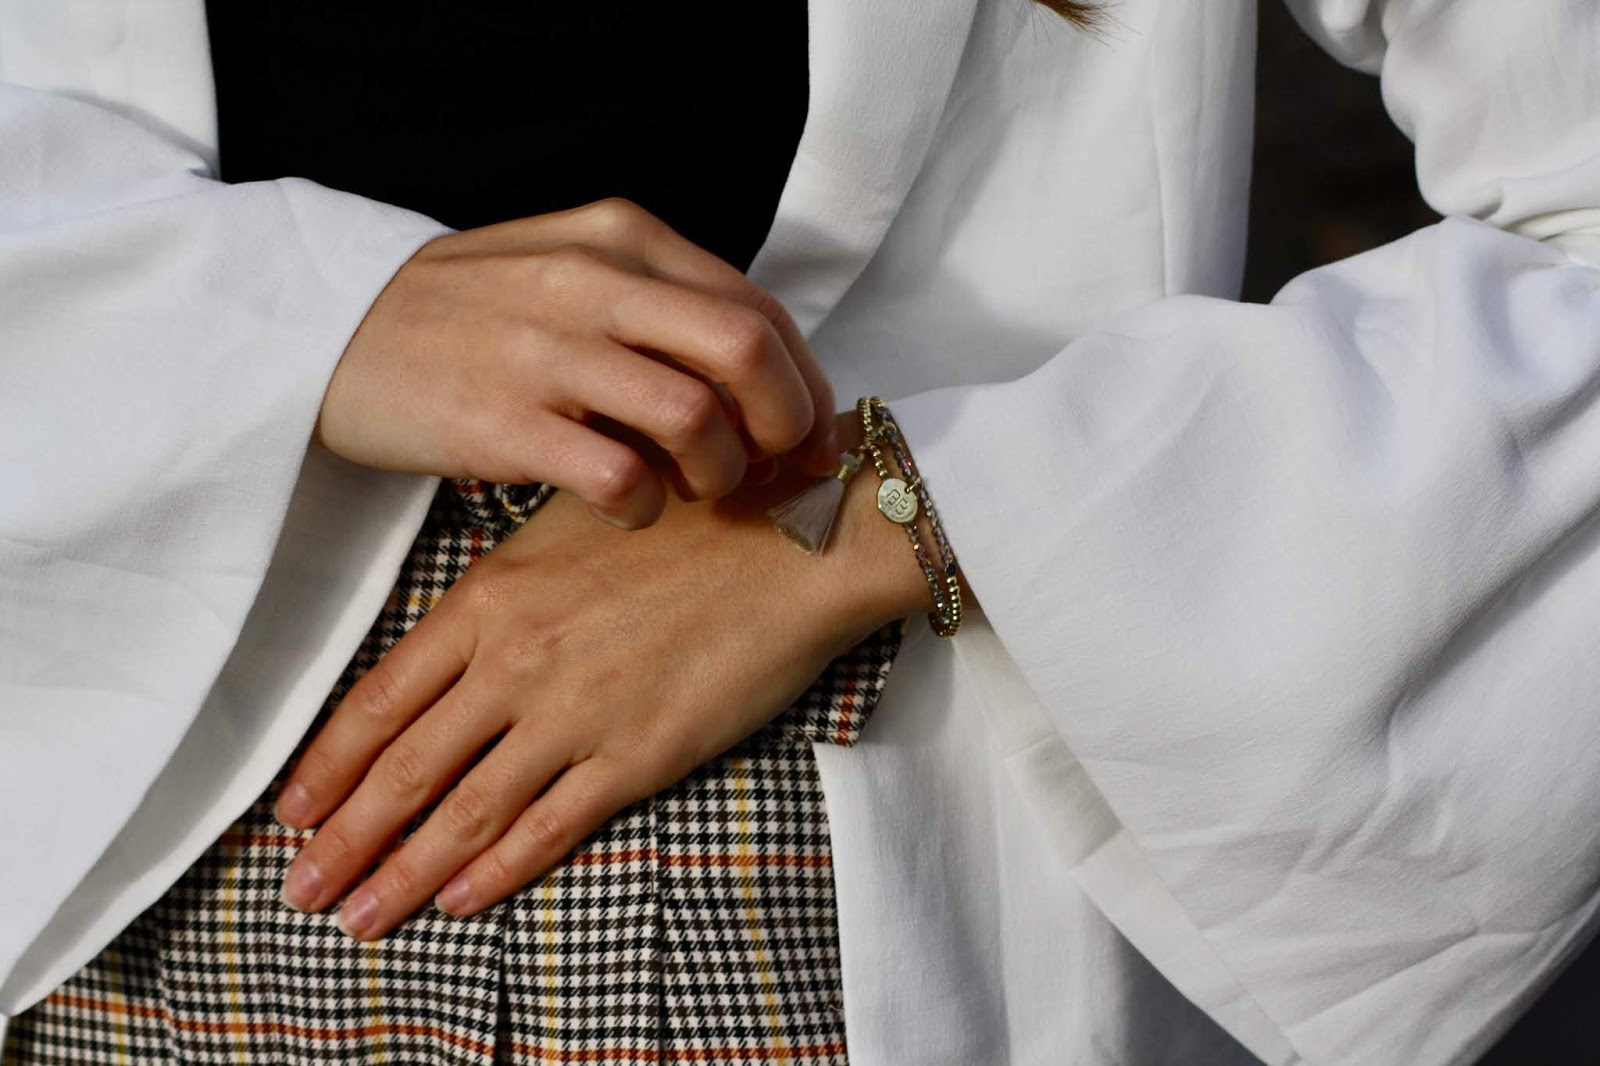 close up of abbey's hands and bell shape sleeves, with a gold tasselled bracelet